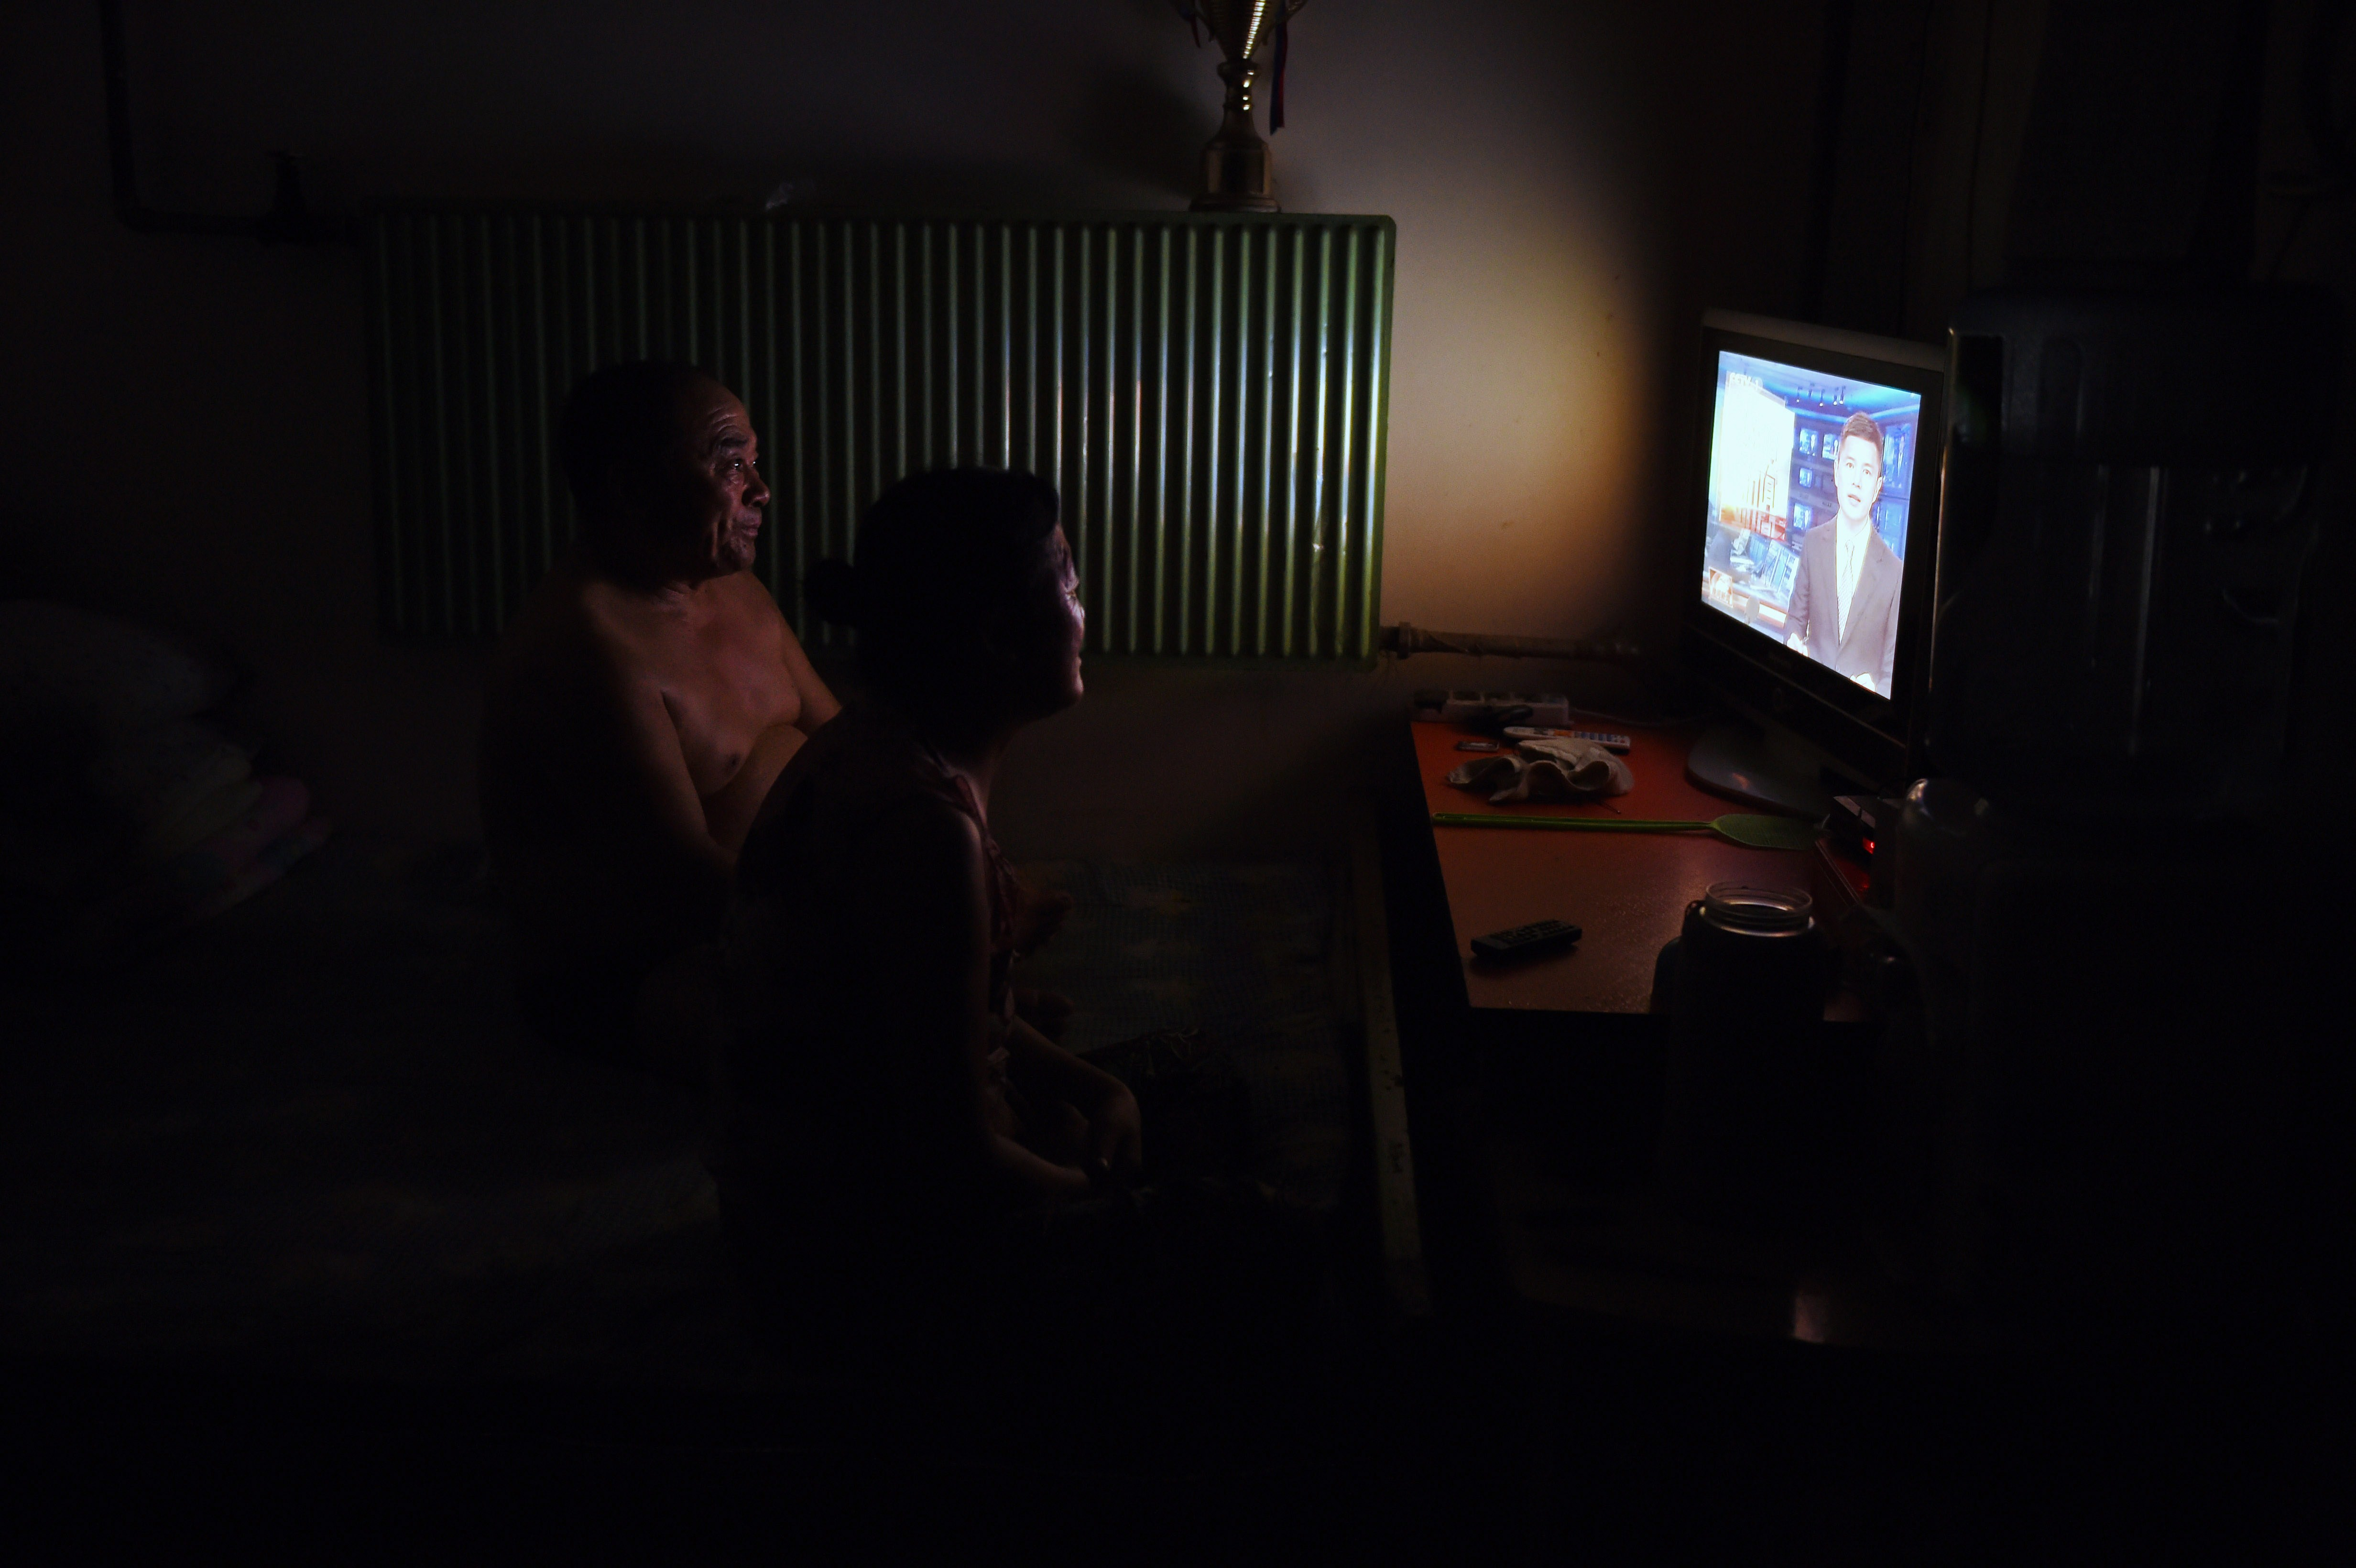 This photo taken on July 15, 2014 shows a couple watching TV in their apartment in Beijing.